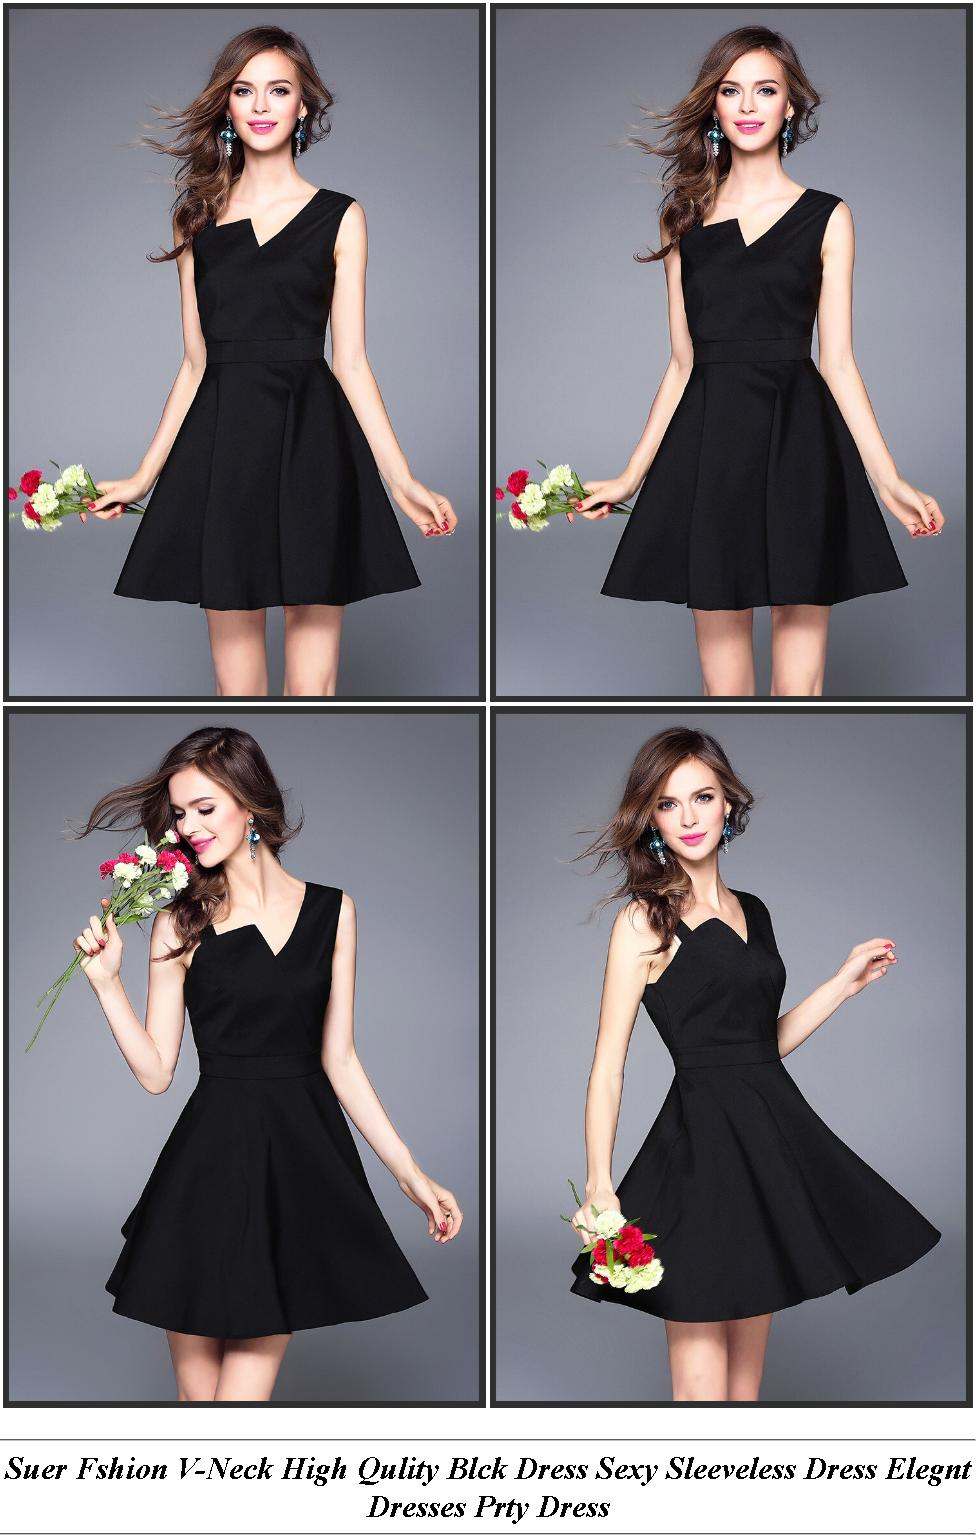 Formal Dresses - Summer Clothes Sale - Dress Design - Cheap Clothes Online